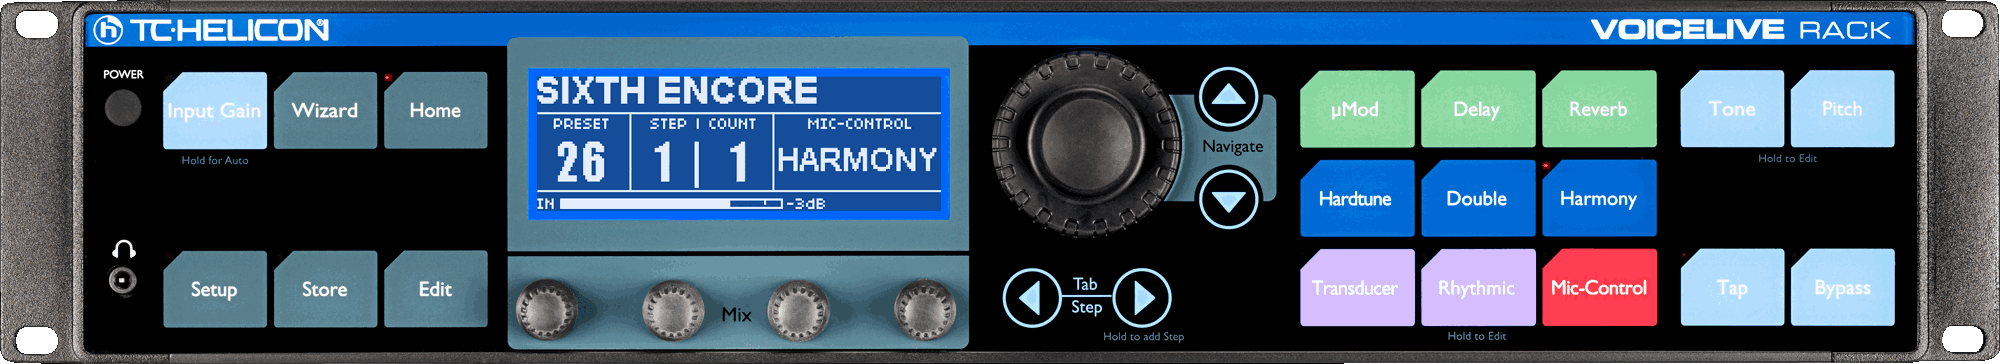 tc helicon product voicelive rack